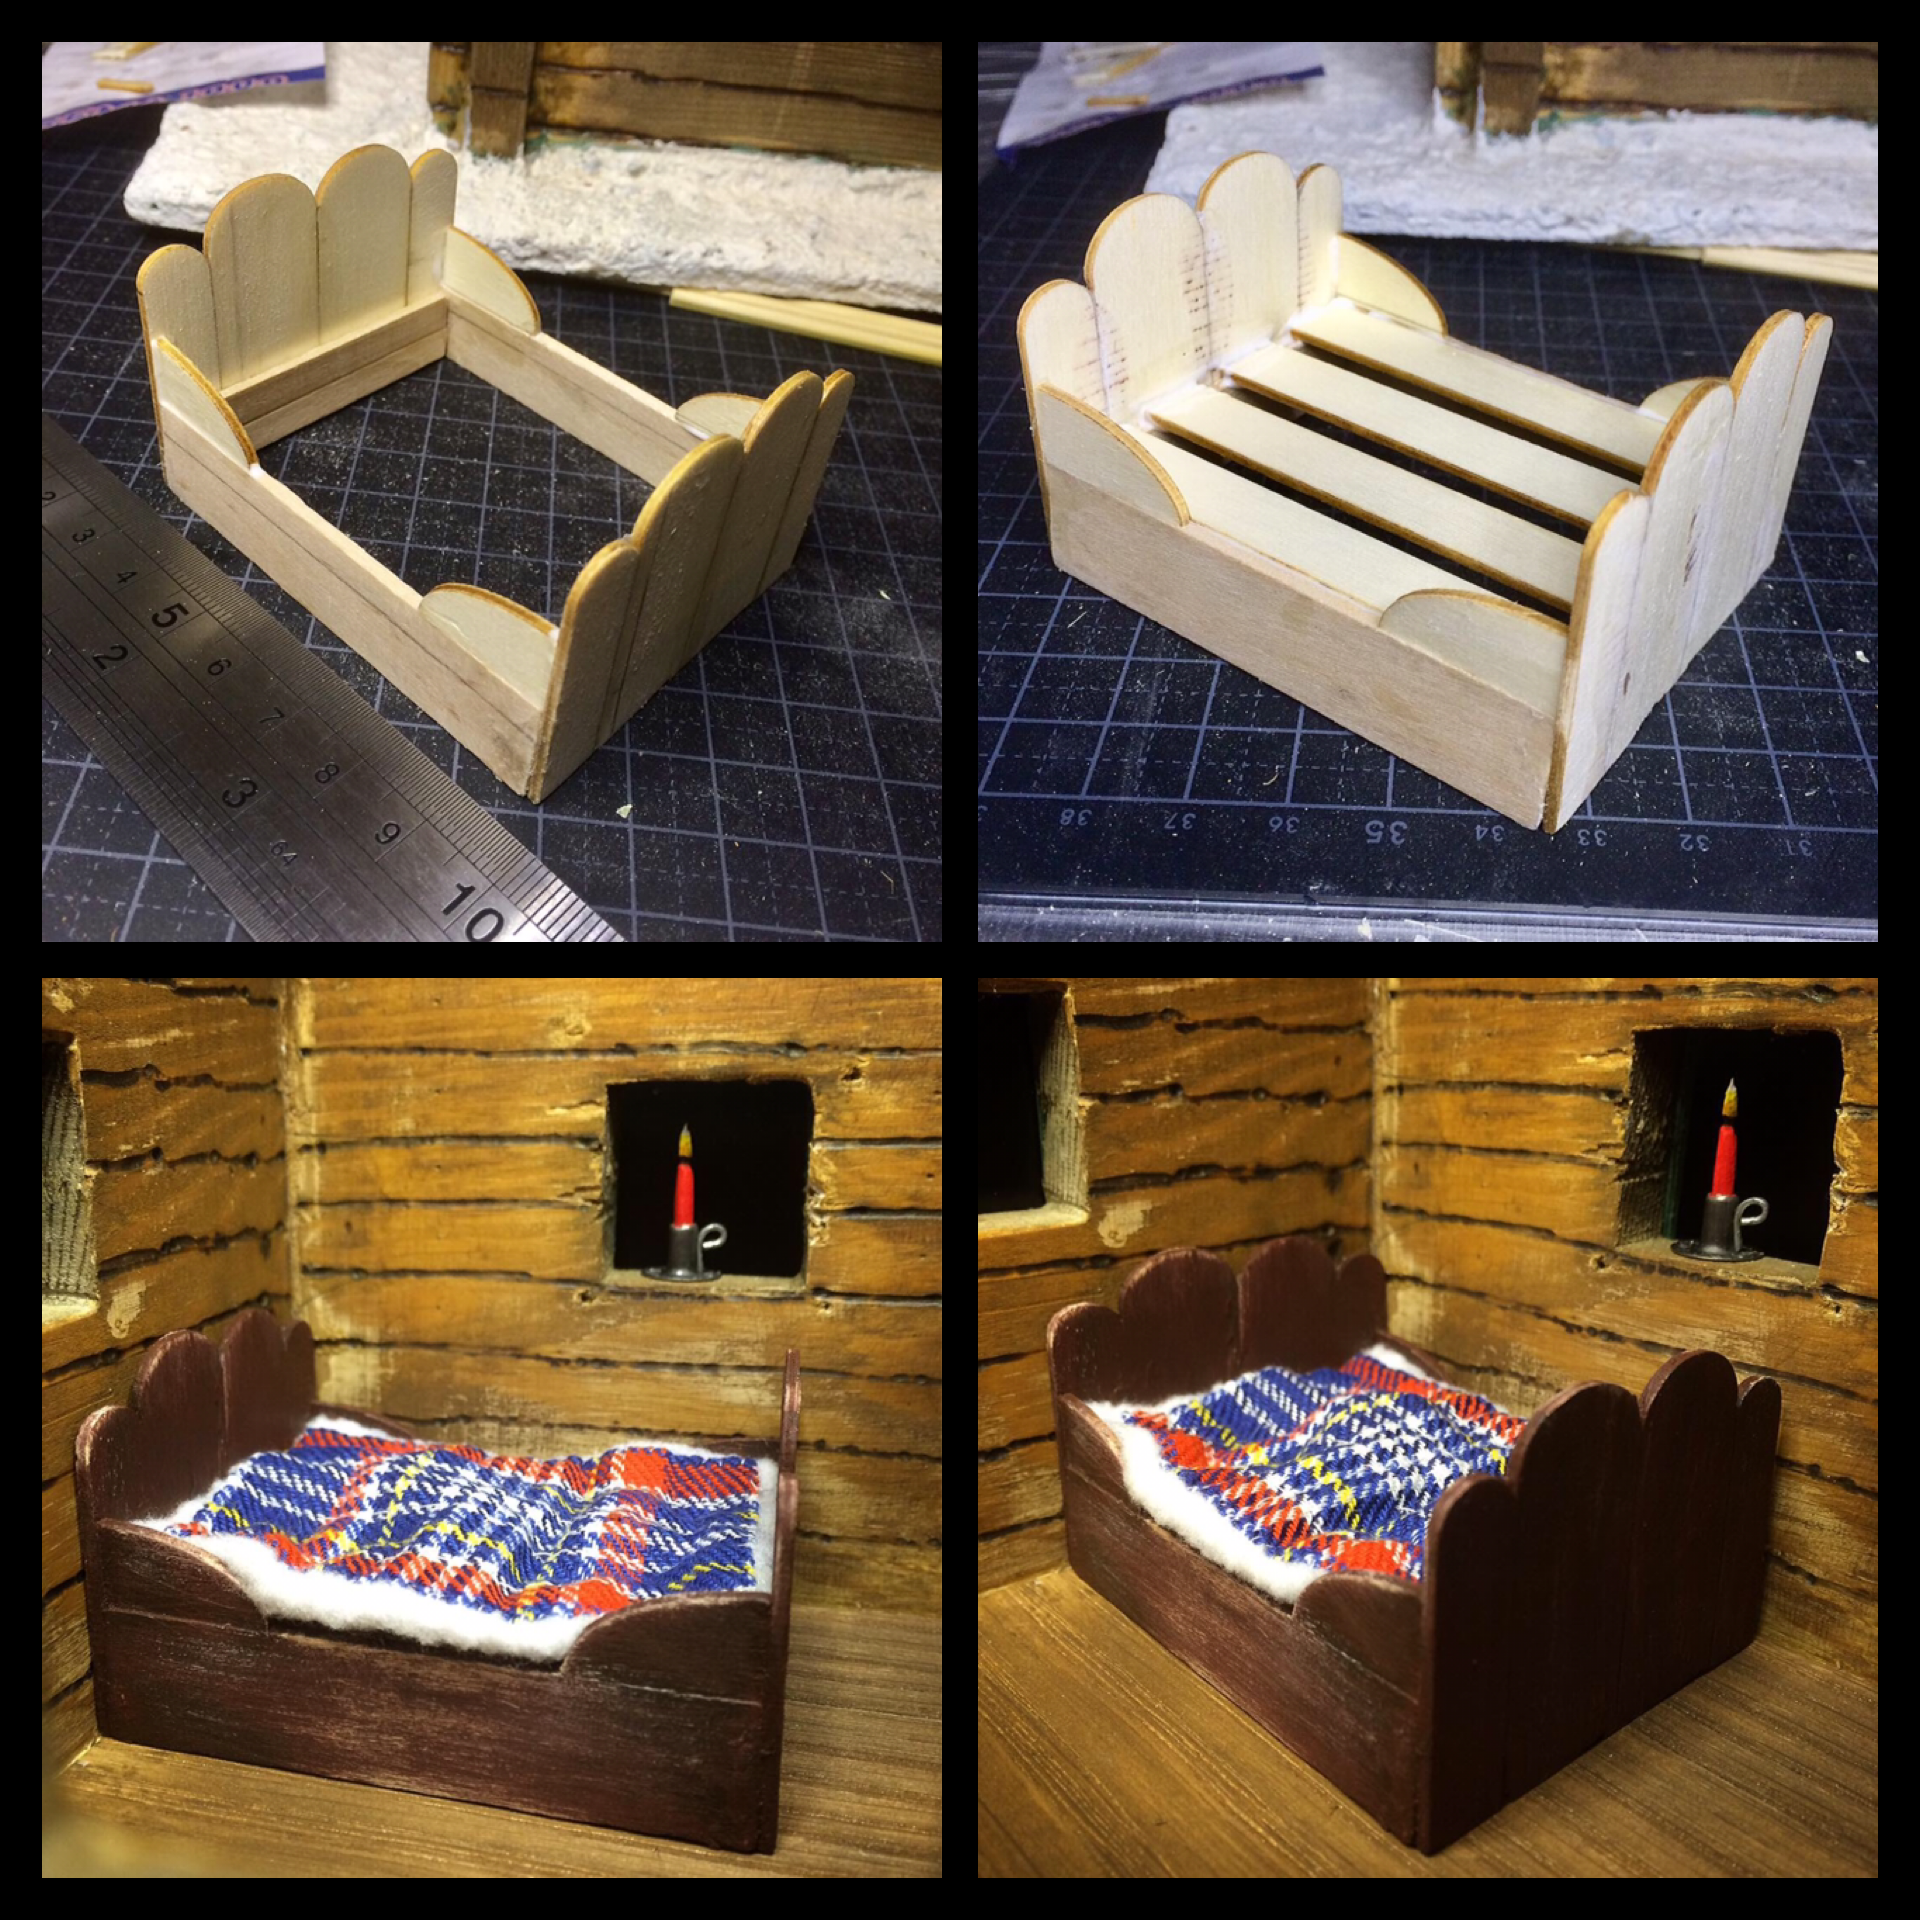 miniature 1:24 scale dollhouse bed made from popsicles